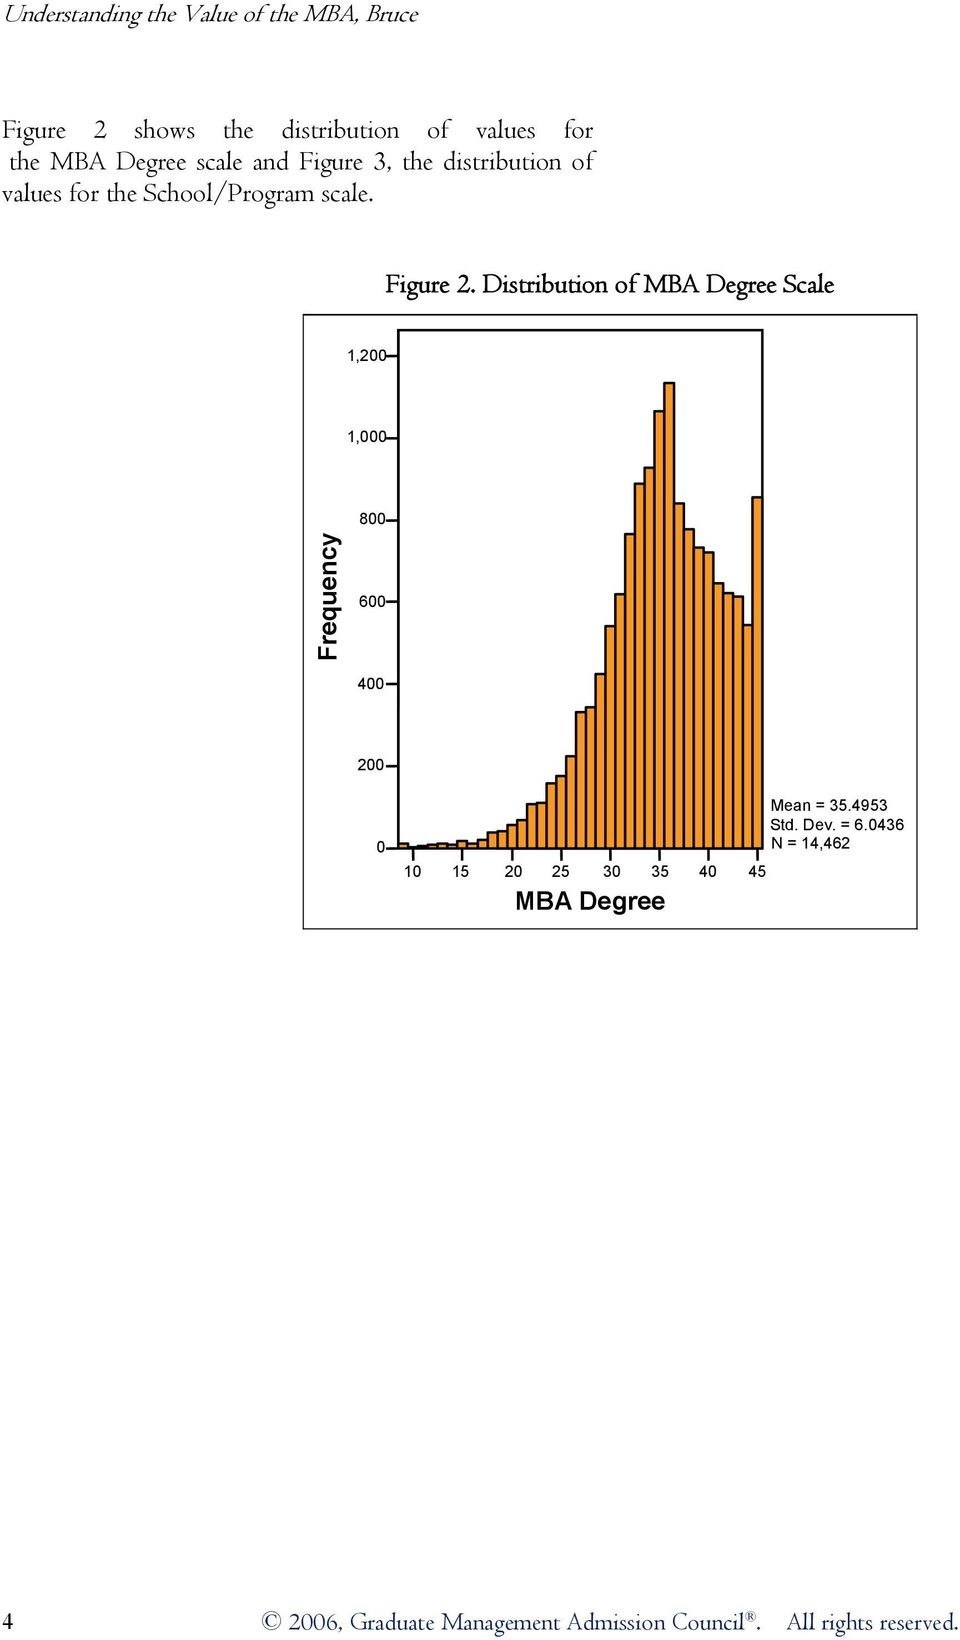 Distribution of MBA Degree Scale 1,200 1,000 800 Frequency 600 400 200 0 10 15 20 25 30 35